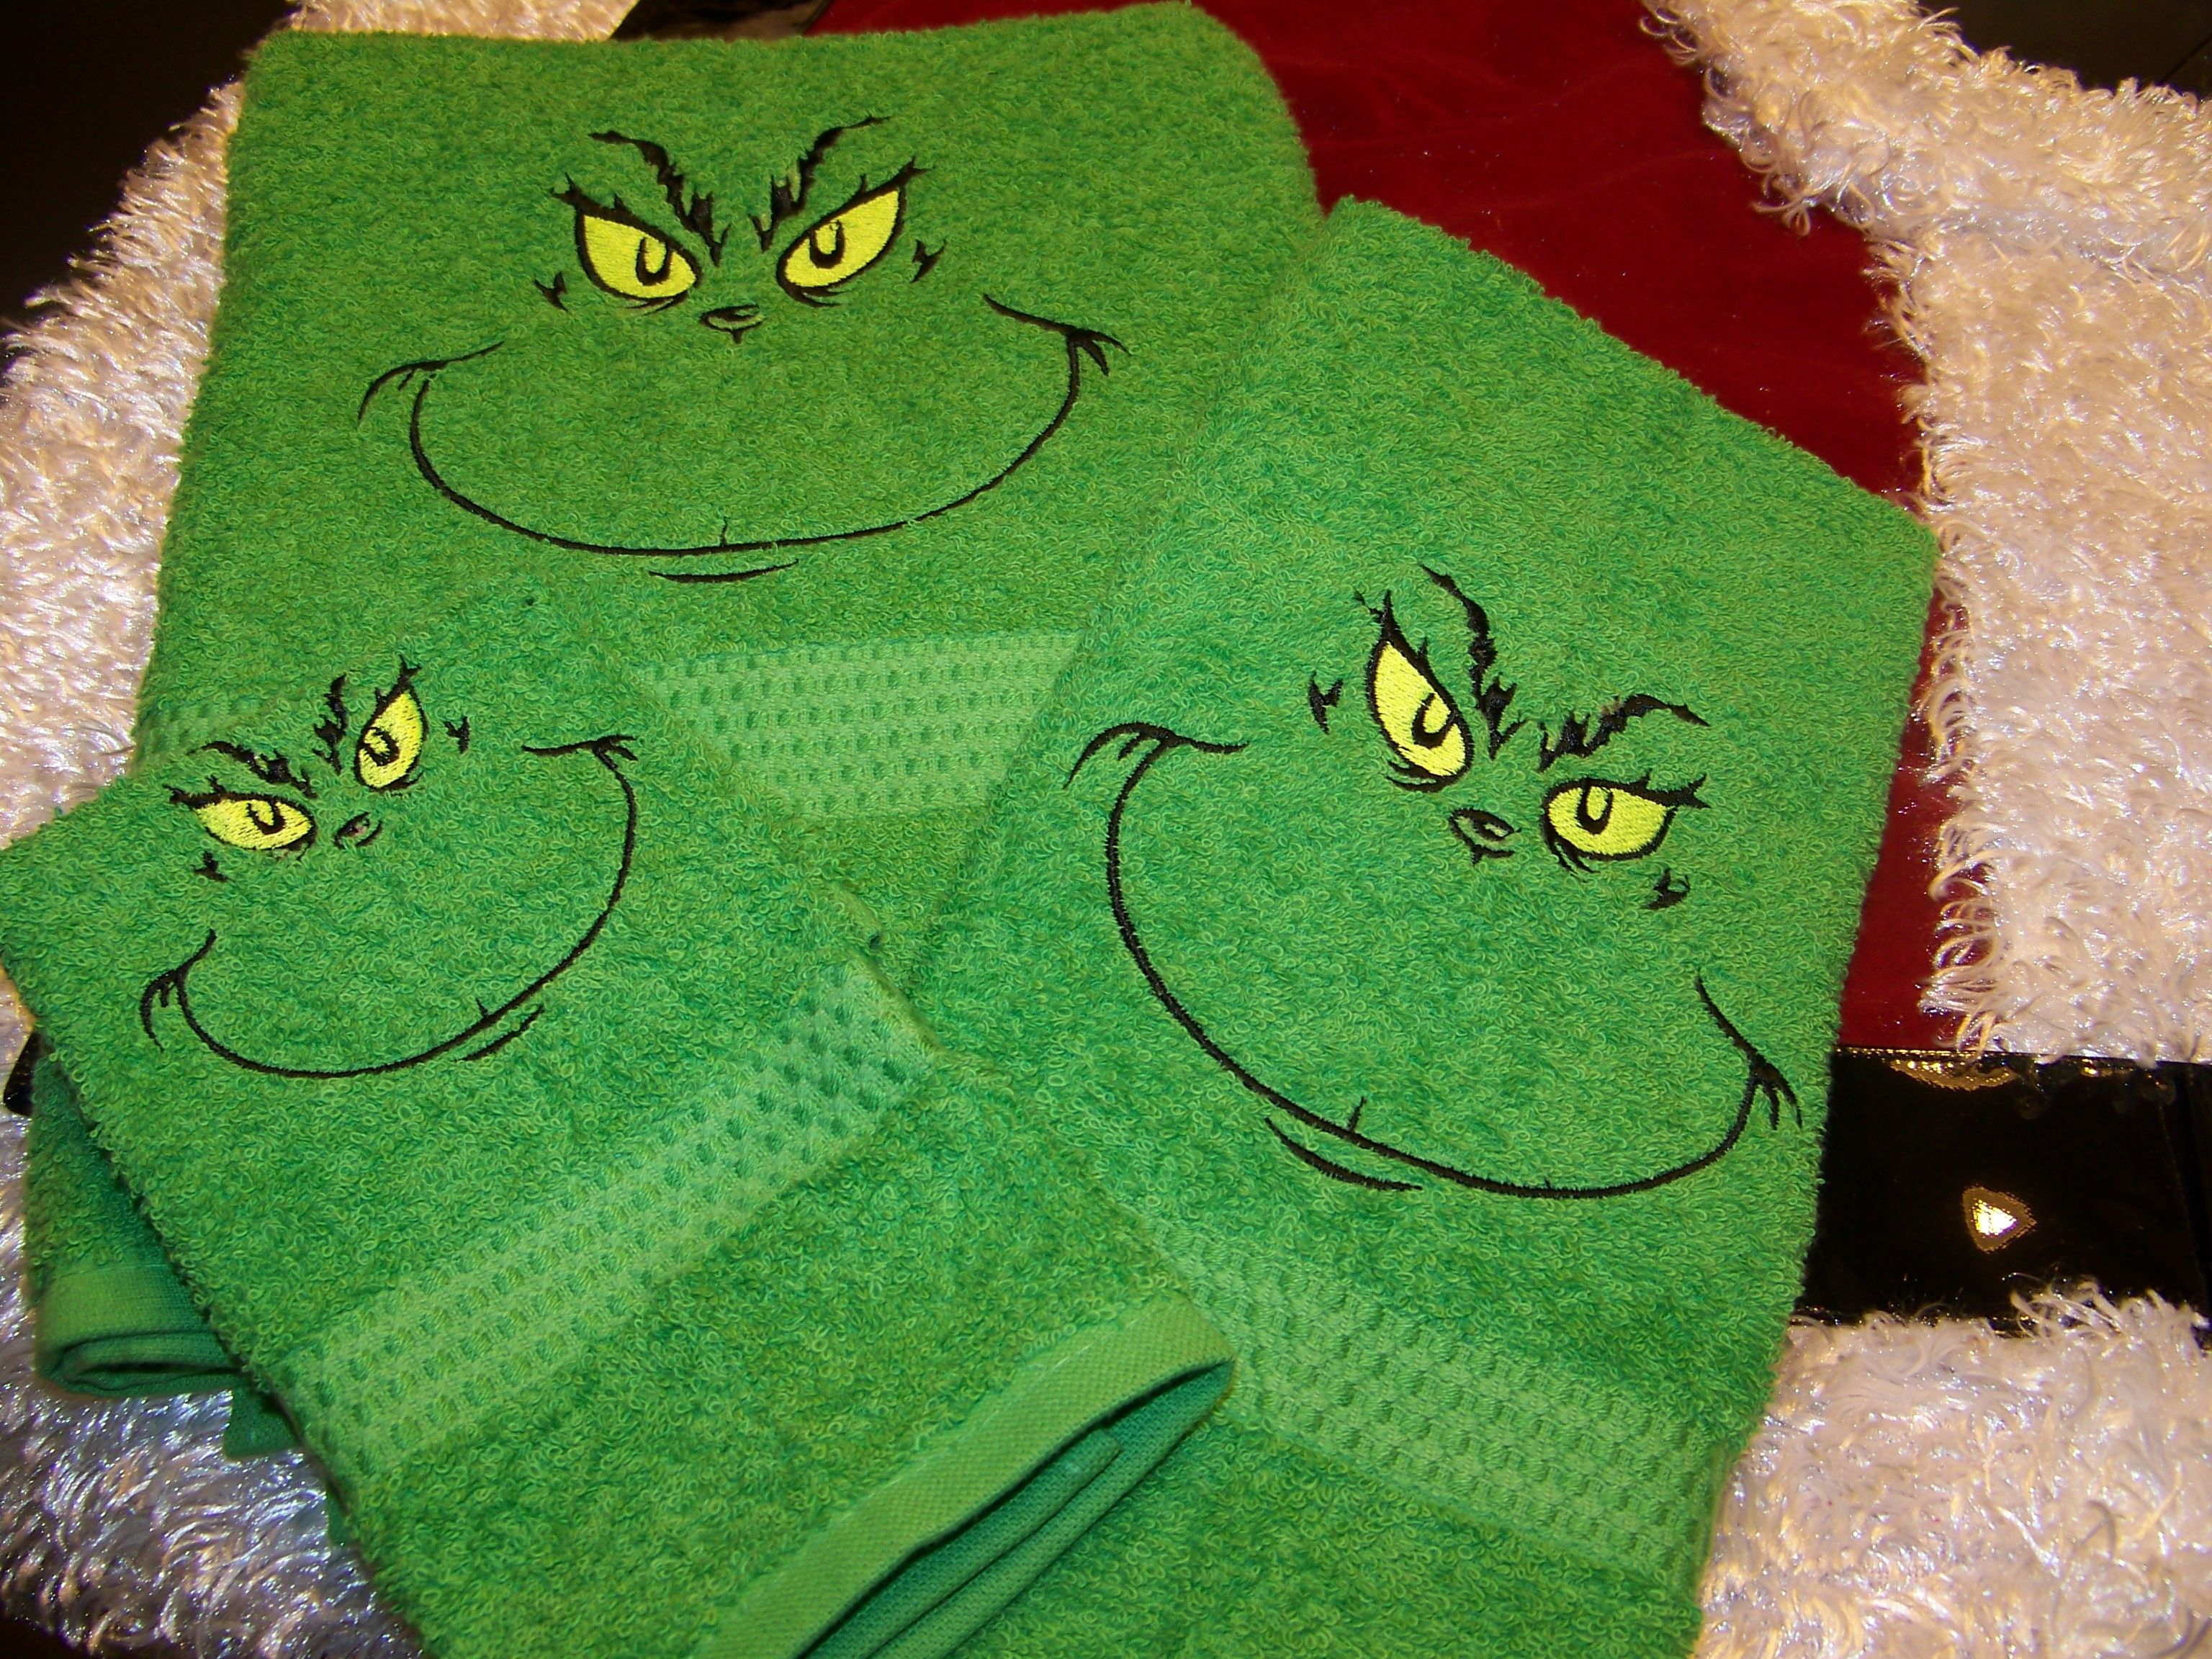 Grinch Towel Setand These Are For